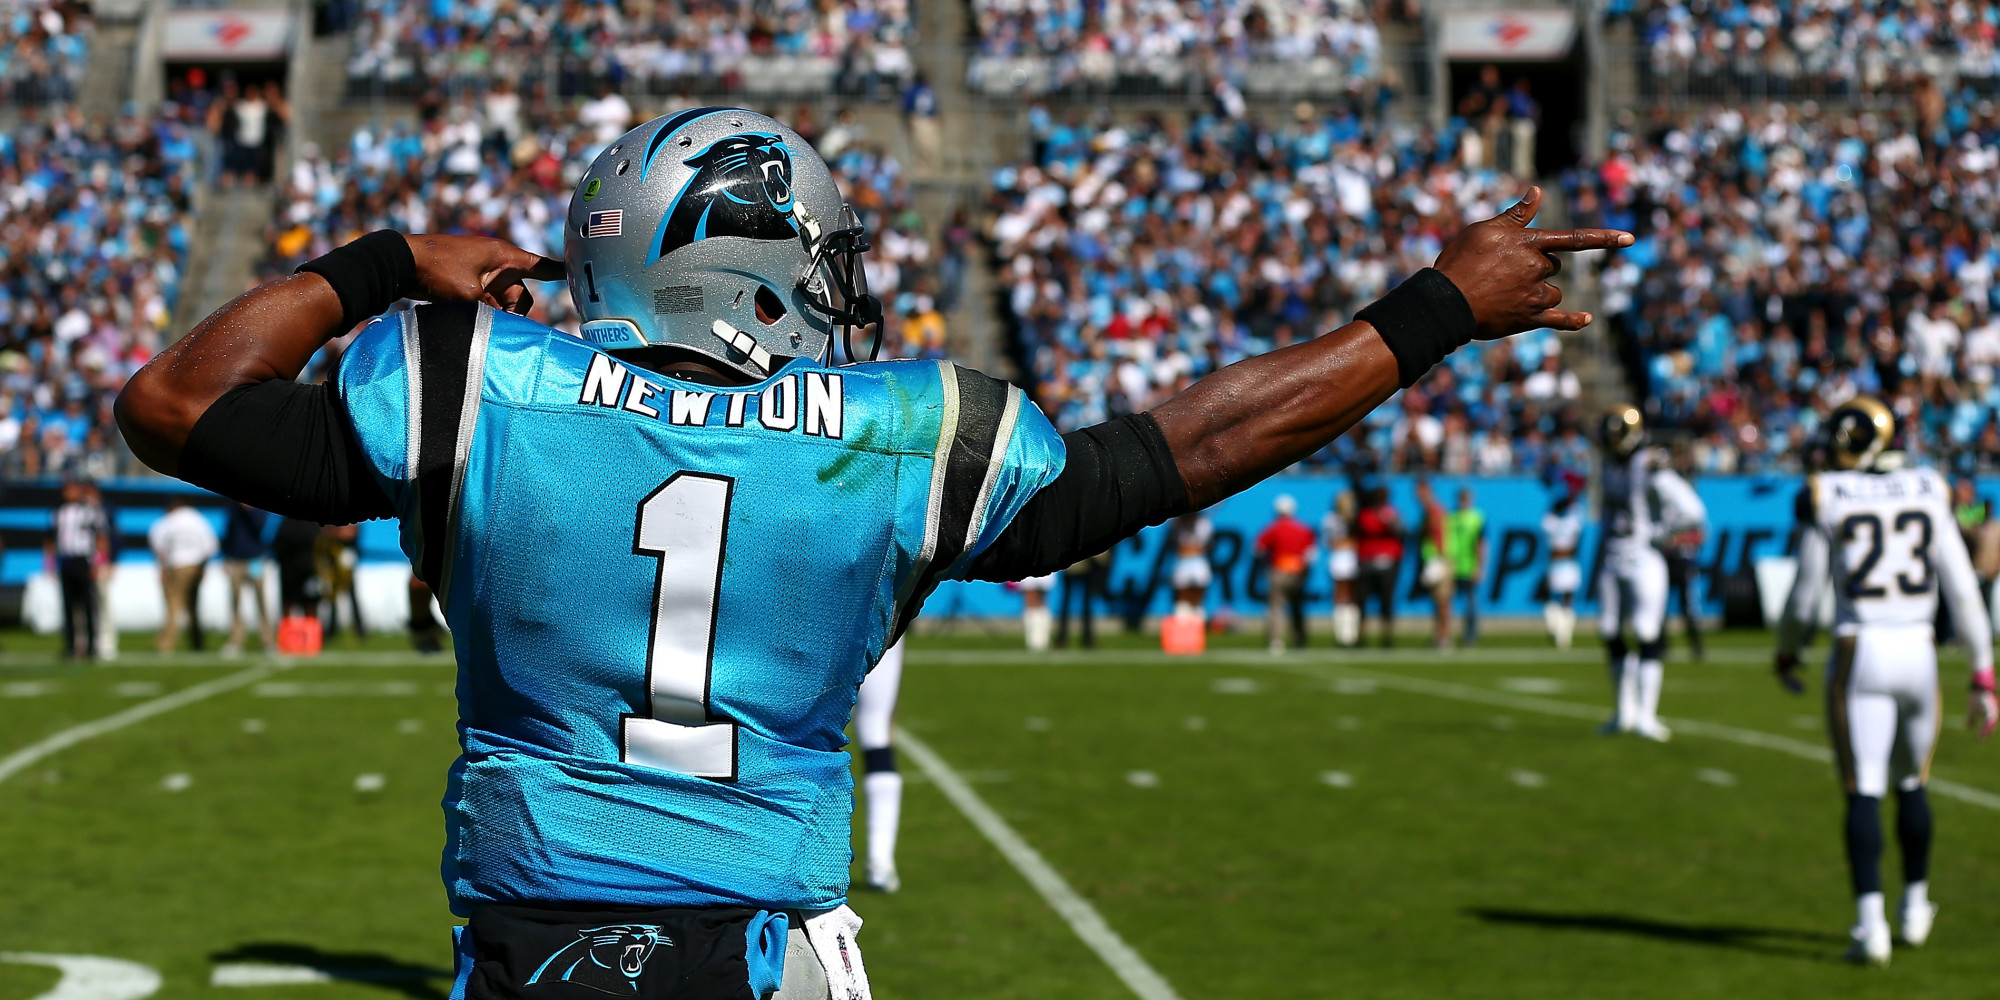 cam newton wallpapers high quality download free